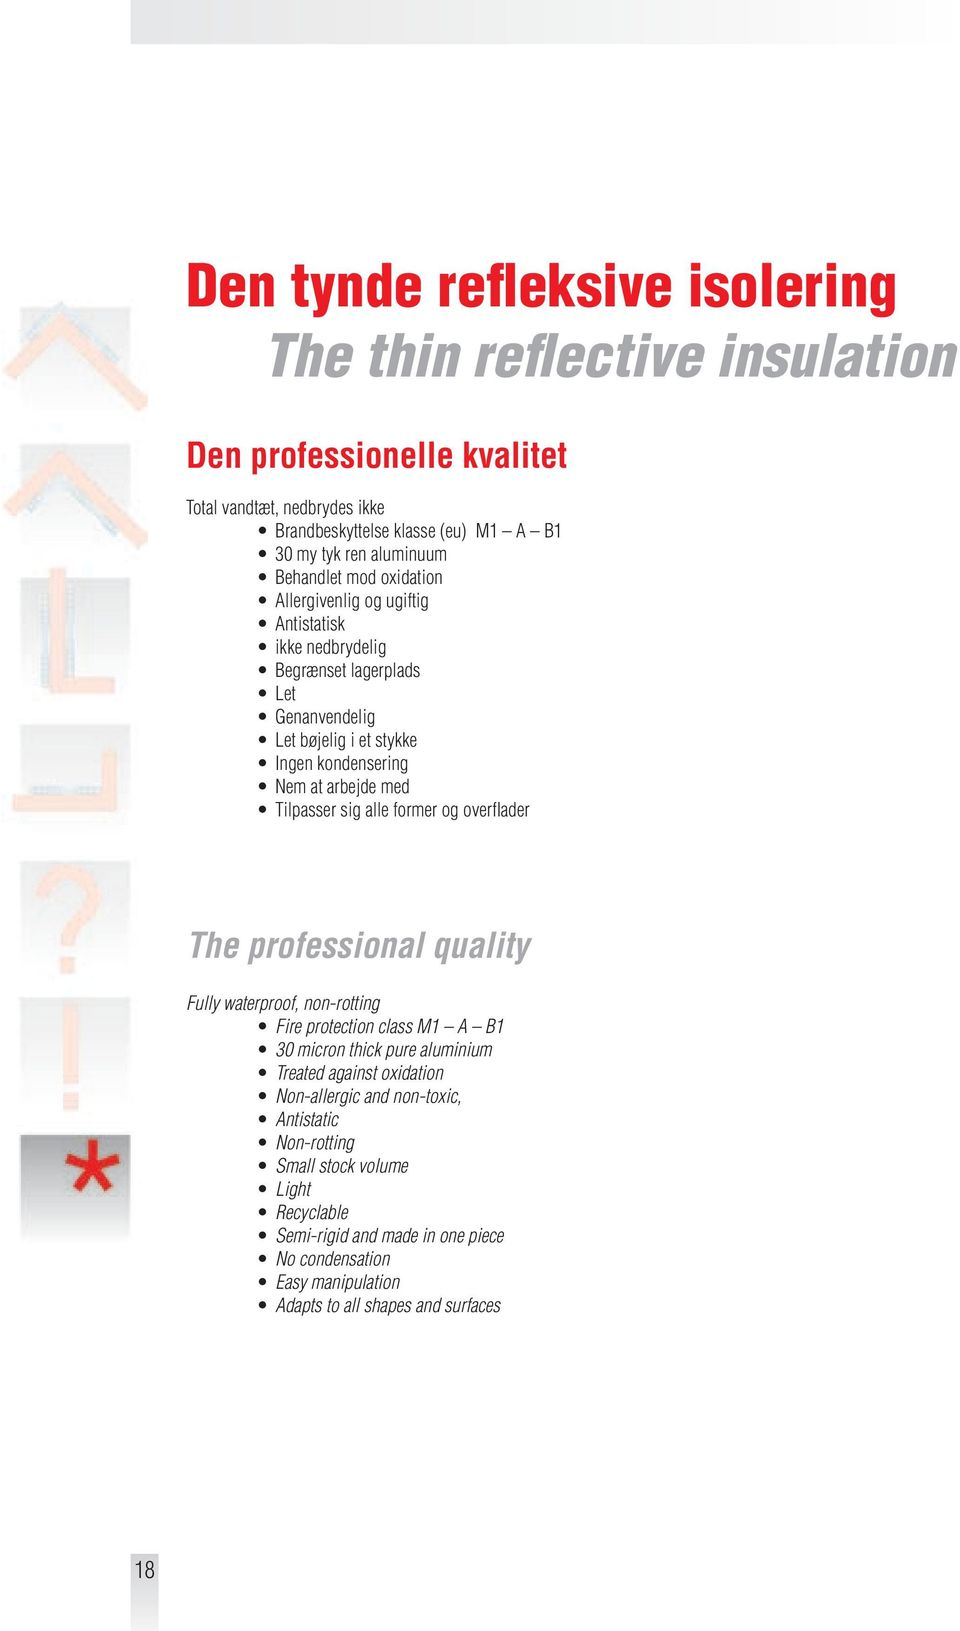 Tilpasser sig alle former og overflader The professional quality Fully waterproof, non-rotting Fire protection class M1 A B1 30 micron thick pure aluminium Treated against oxidation